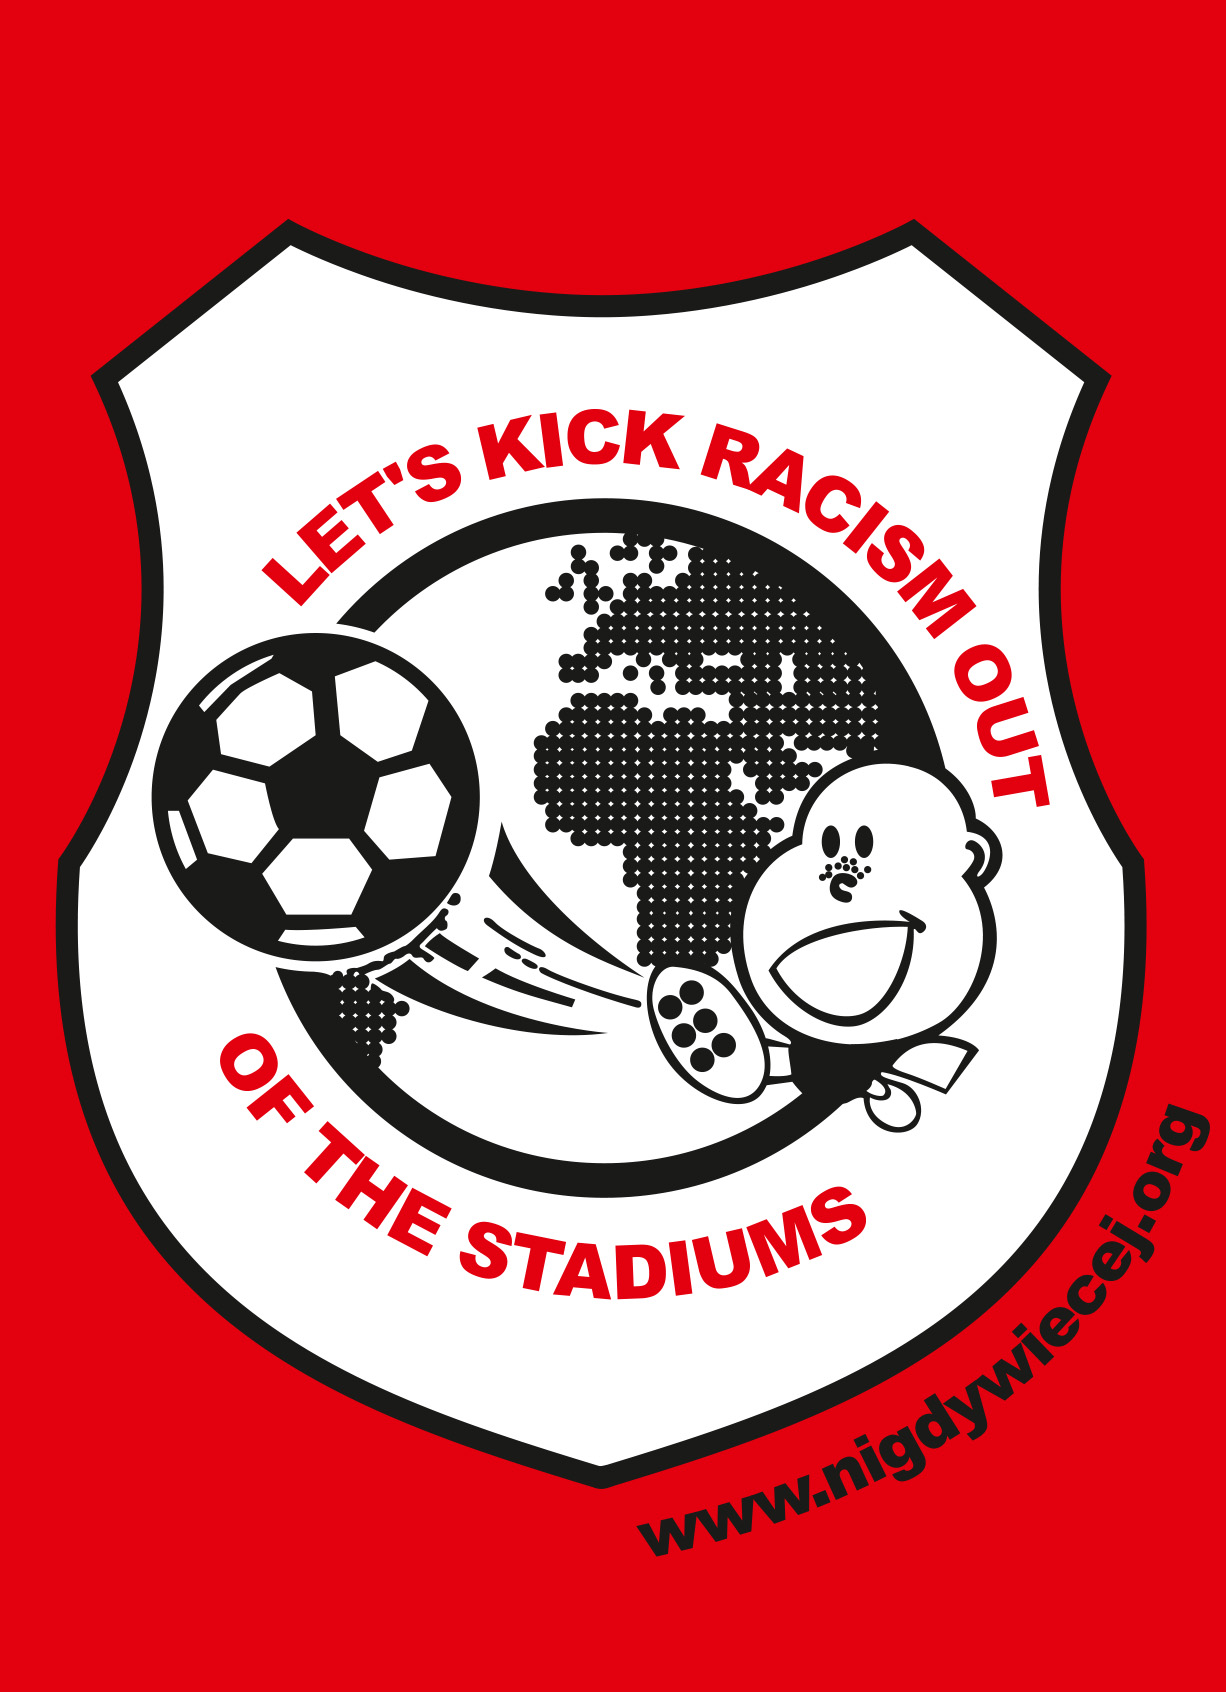 Let's kick racism out of the stadiums